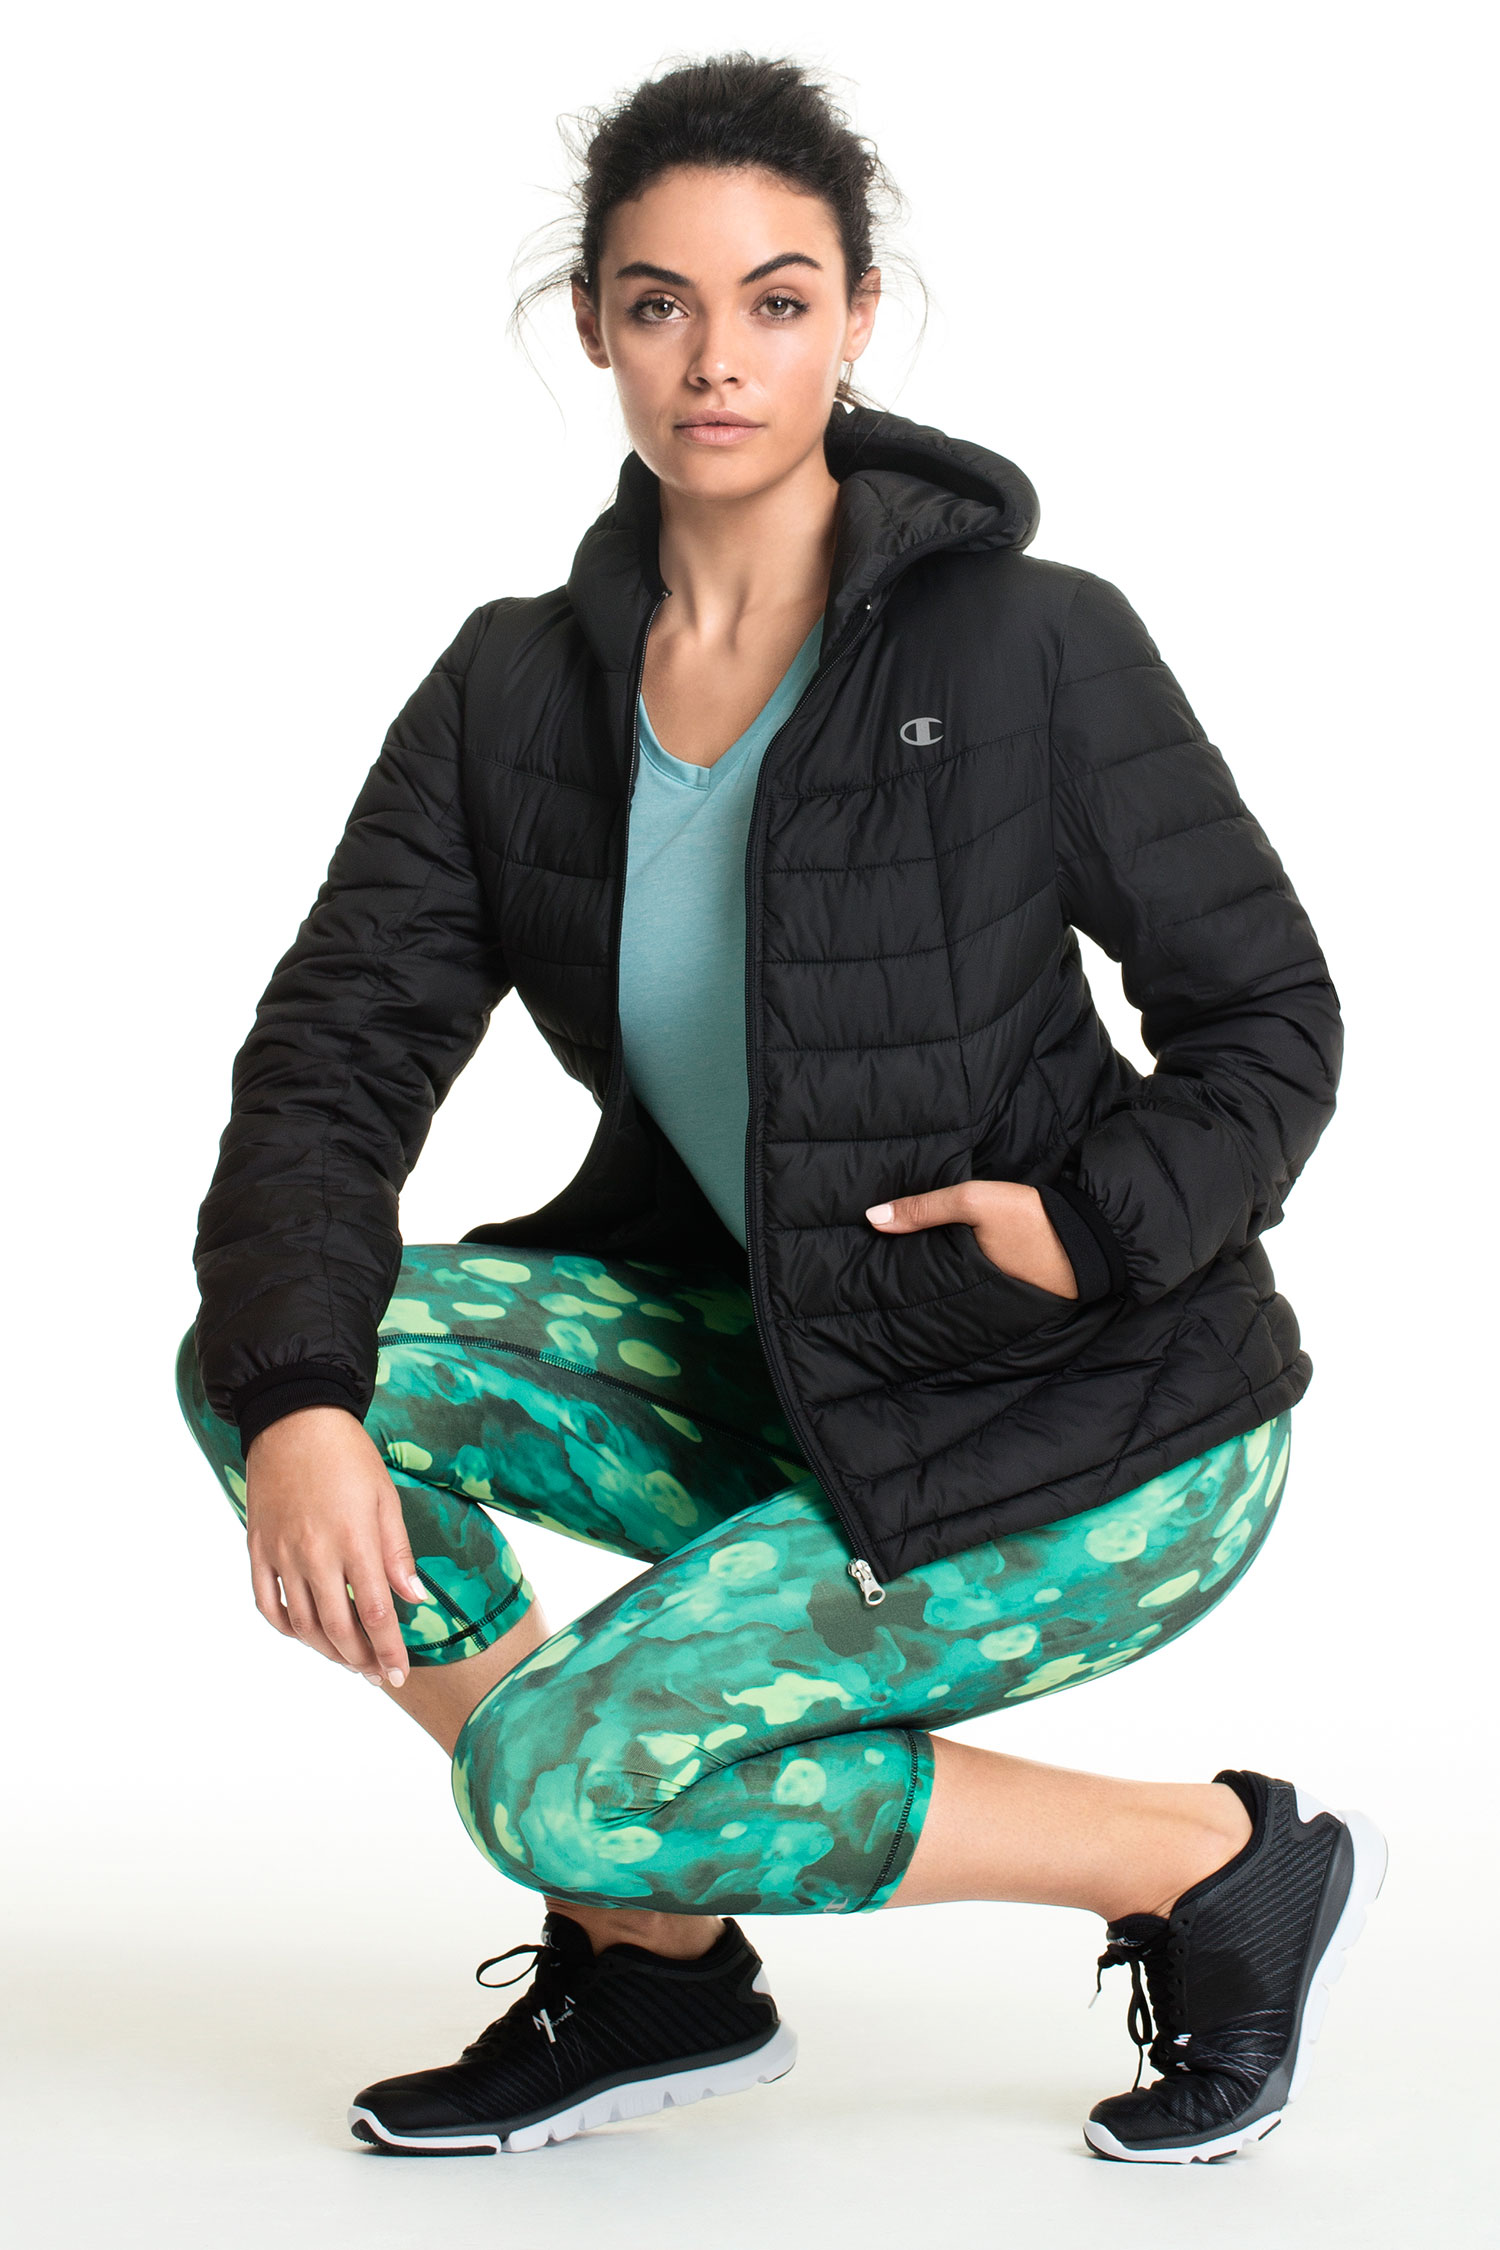 Champion: Performance wear that emphasizes comfort and fit. Designed with the latest fabric technologies and detailing - training has never felt so good. Shop Jacket, Top and Pants.